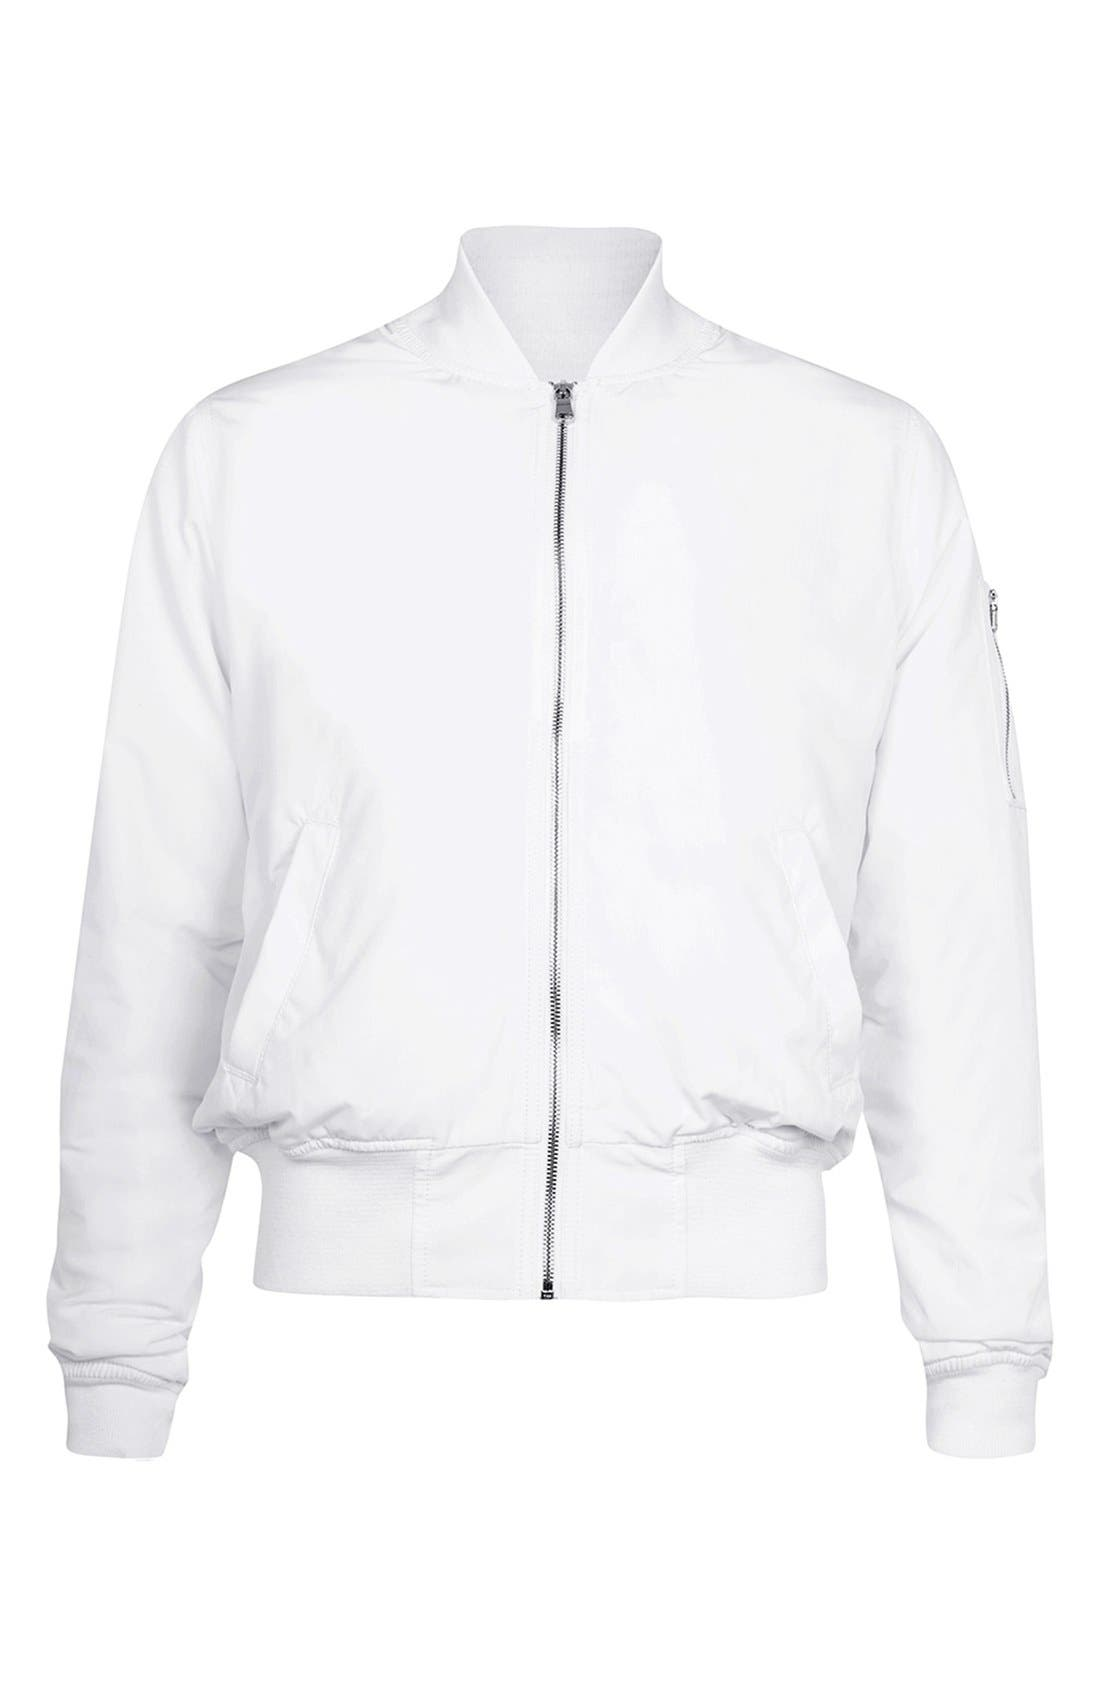 AAA Collection Ruched Back Bomber Jacket,                             Alternate thumbnail 3, color,                             100